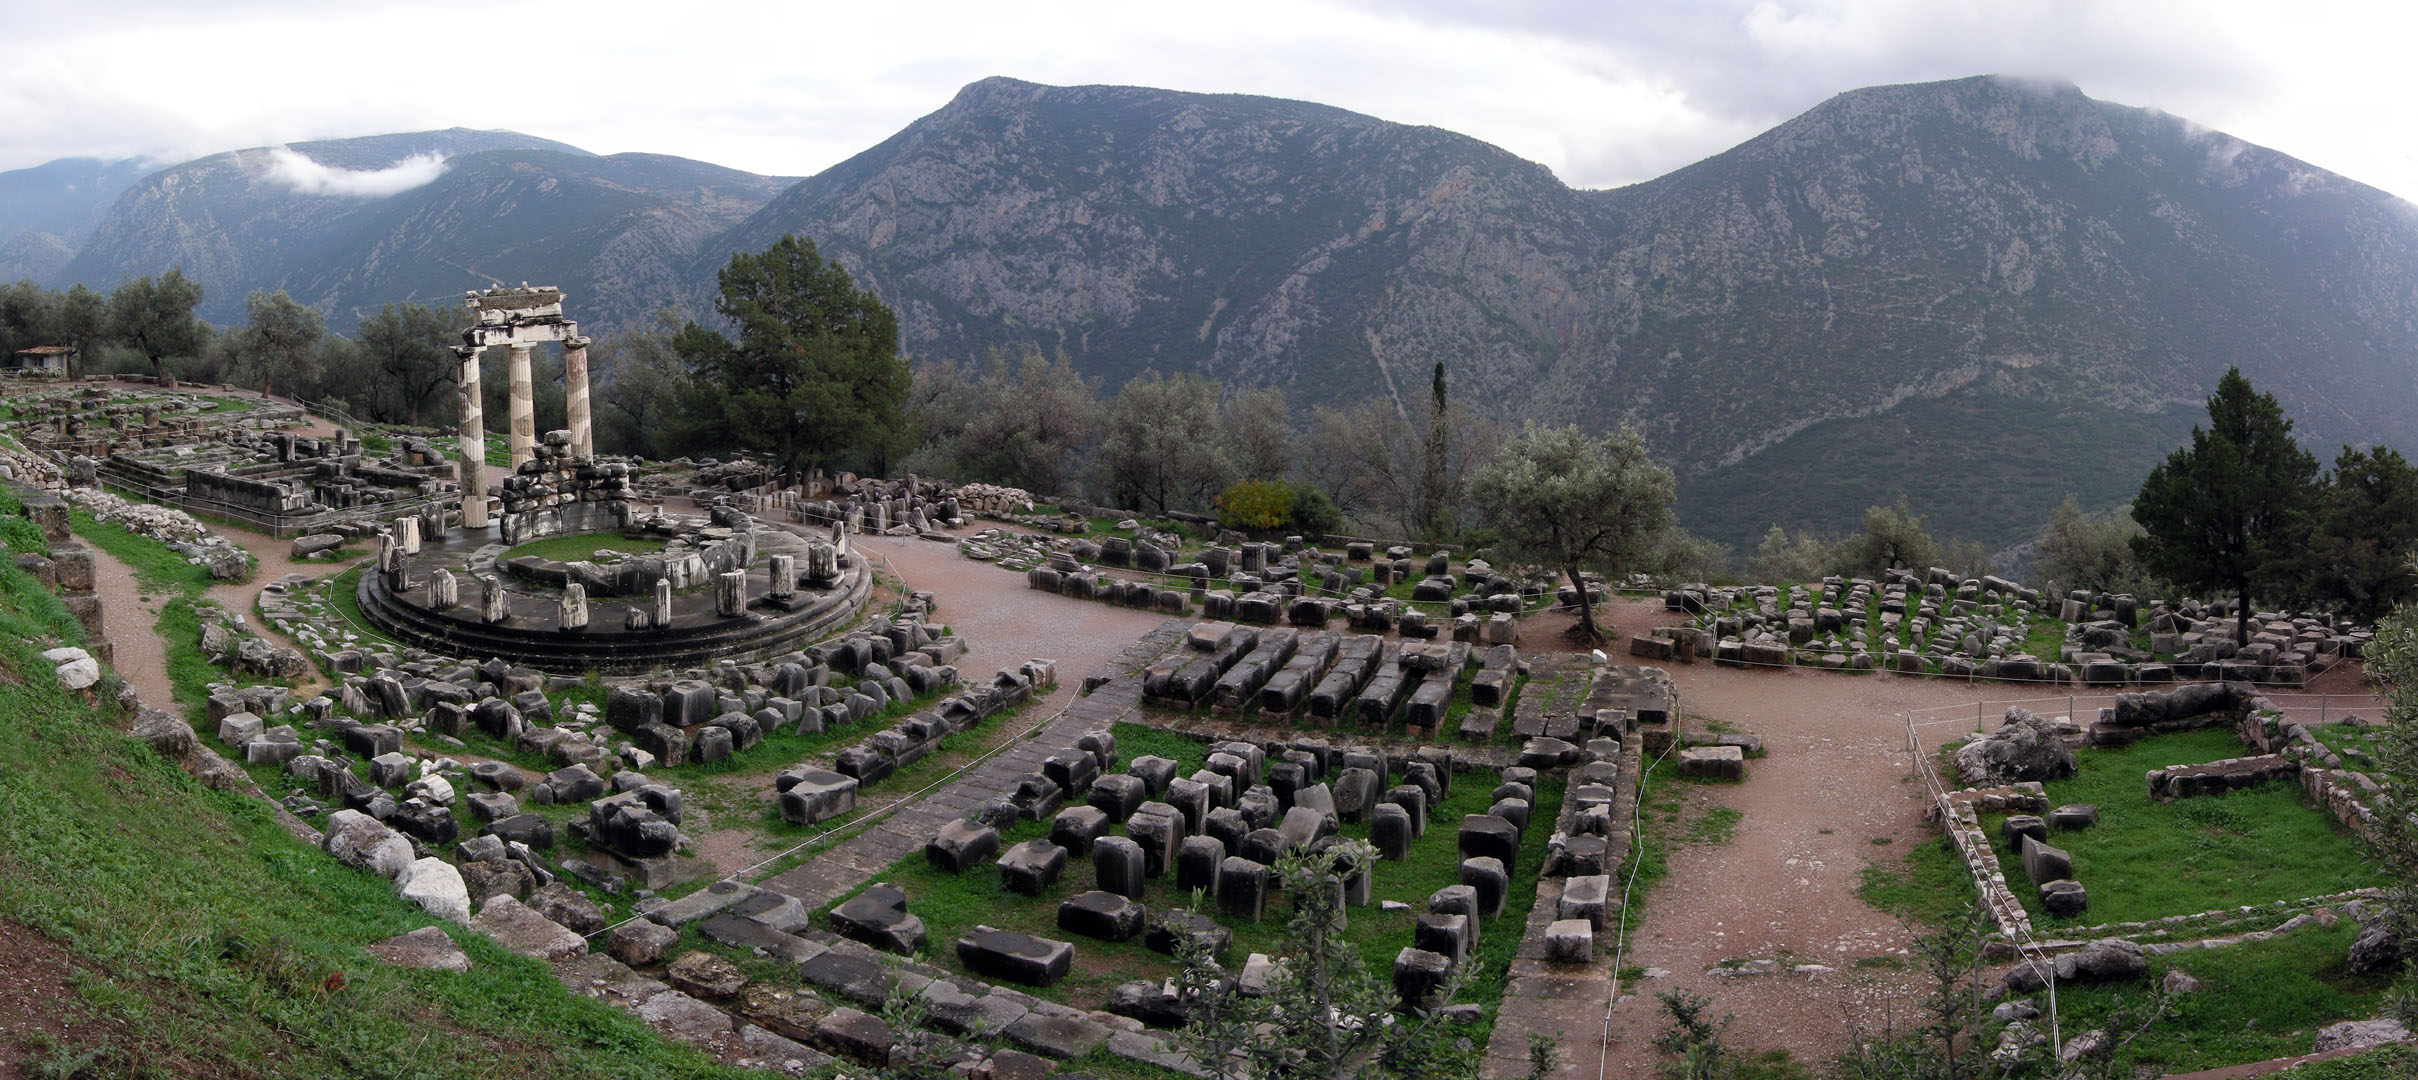 https://upload.wikimedia.org/wikipedia/commons/9/93/Athina_Pronaia_Sanctuary_at_Delphi.jpg